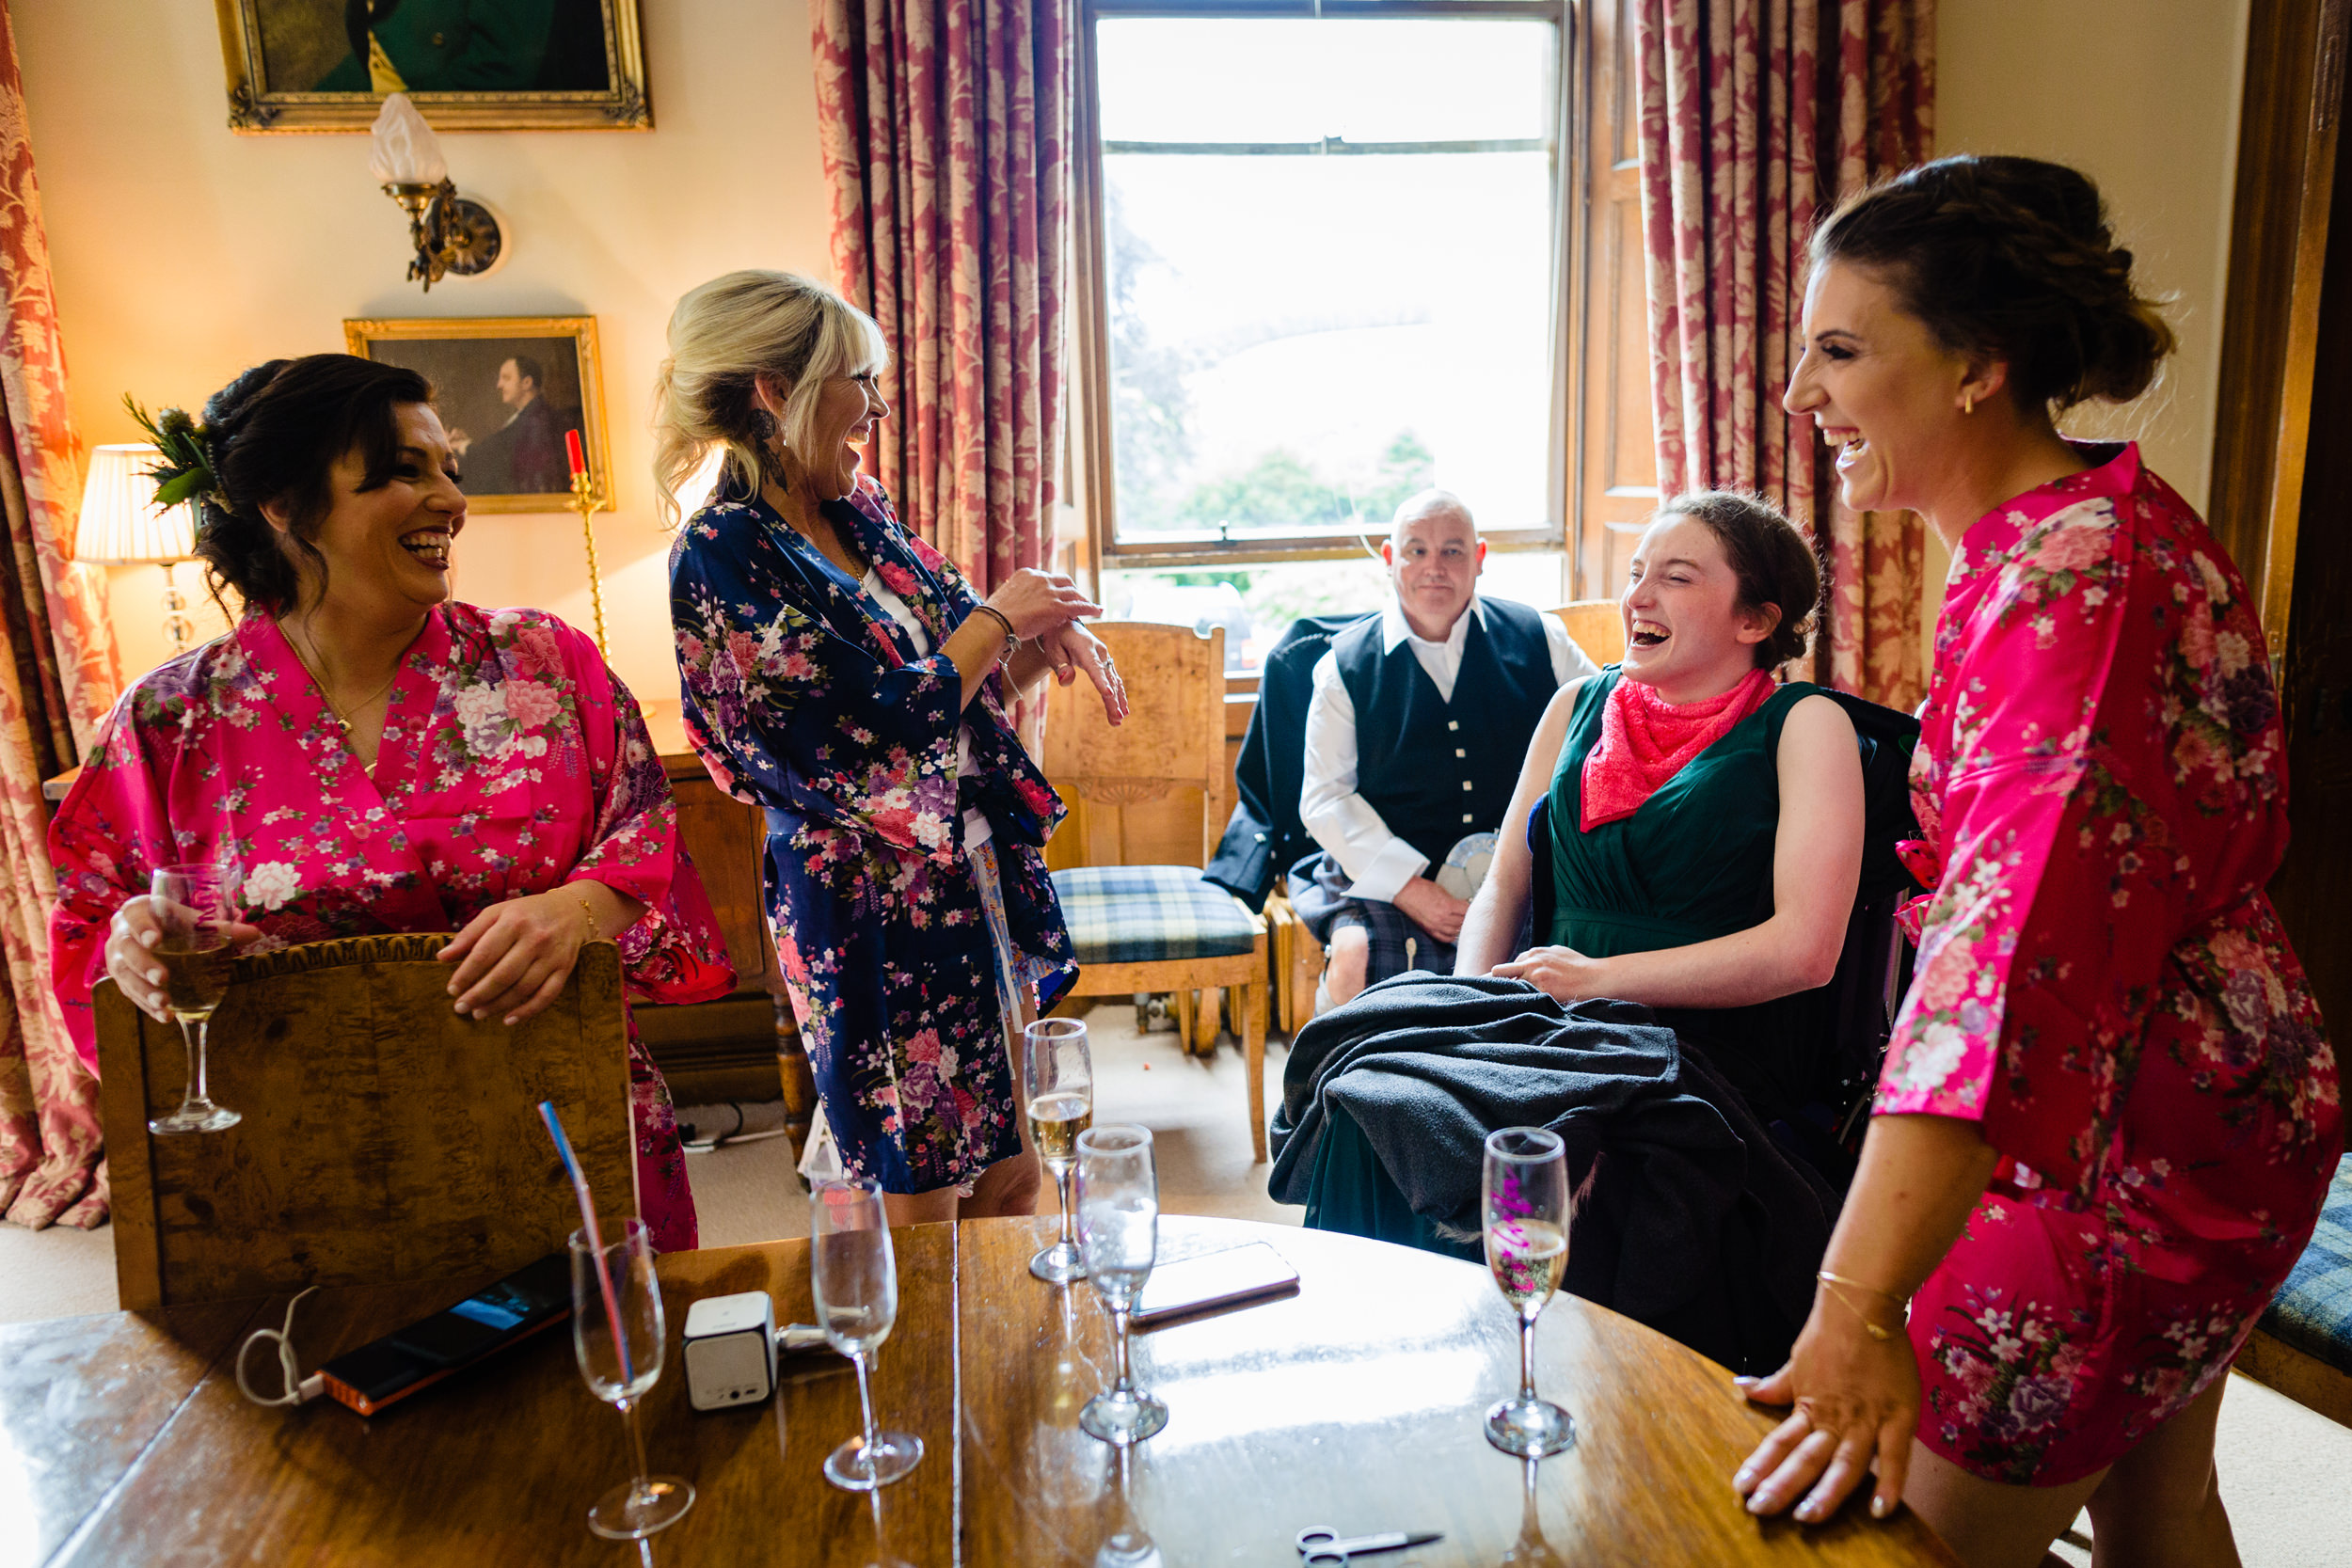 bridesmaids laughing during prep. scotland wedding photography by emma and rich.